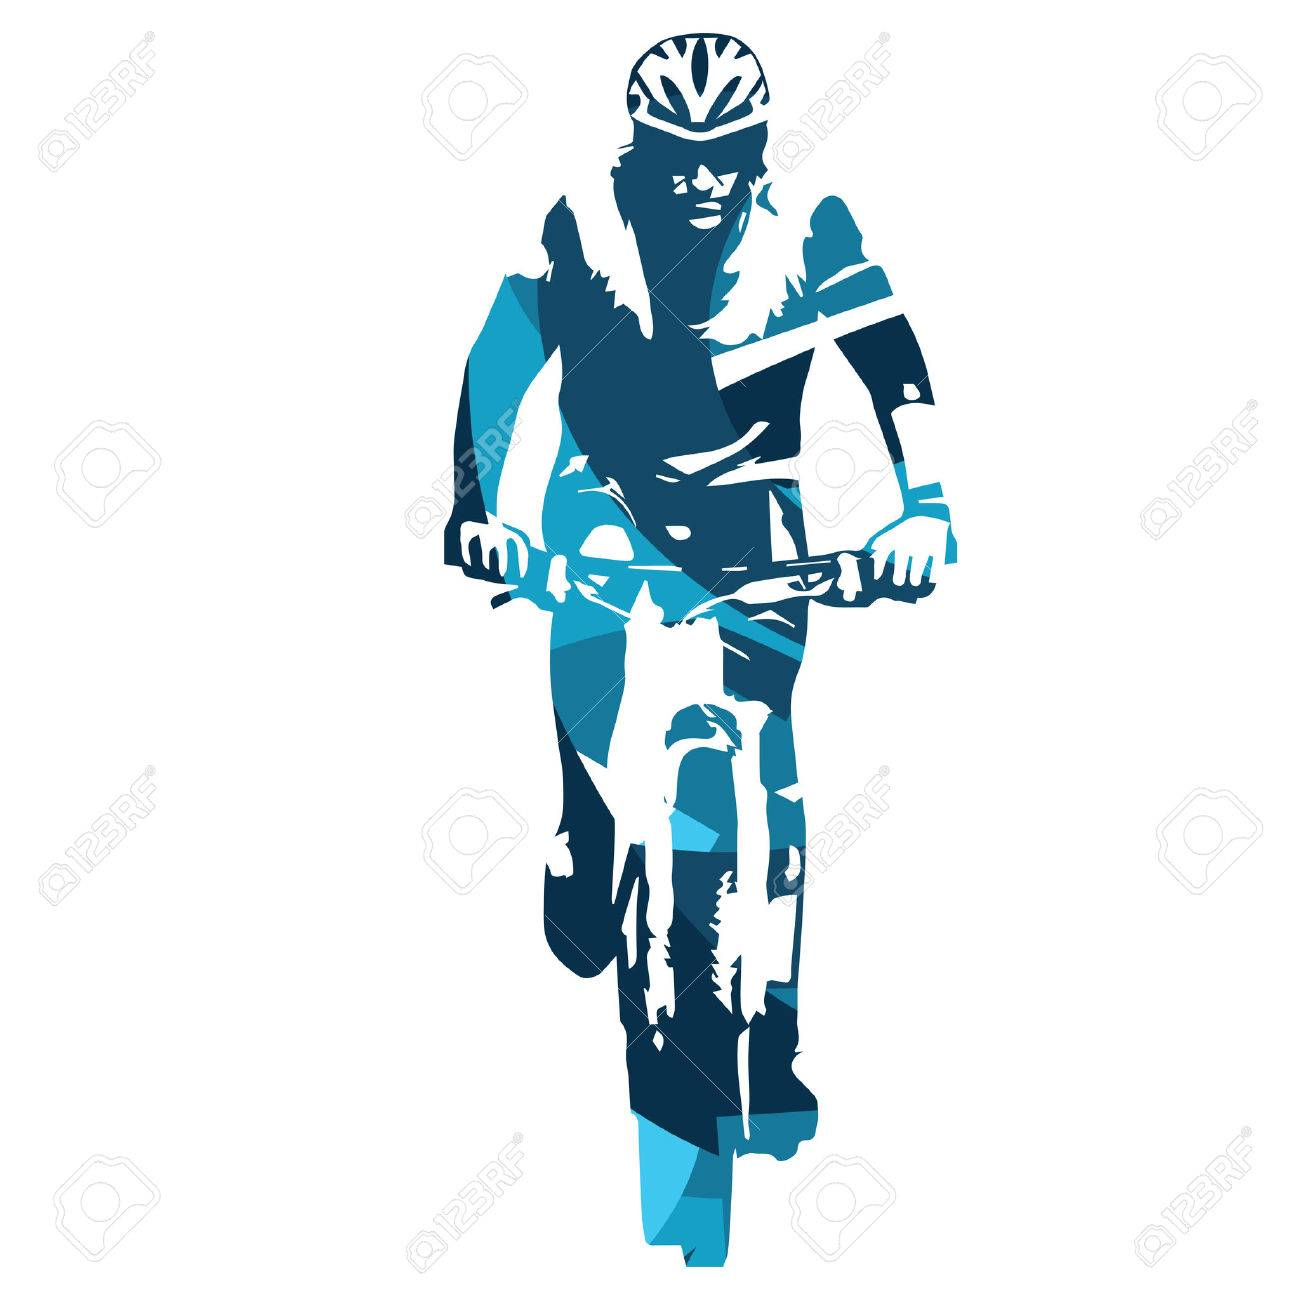 Mountain biker front view. Abstract blue vector illustration - 55399722